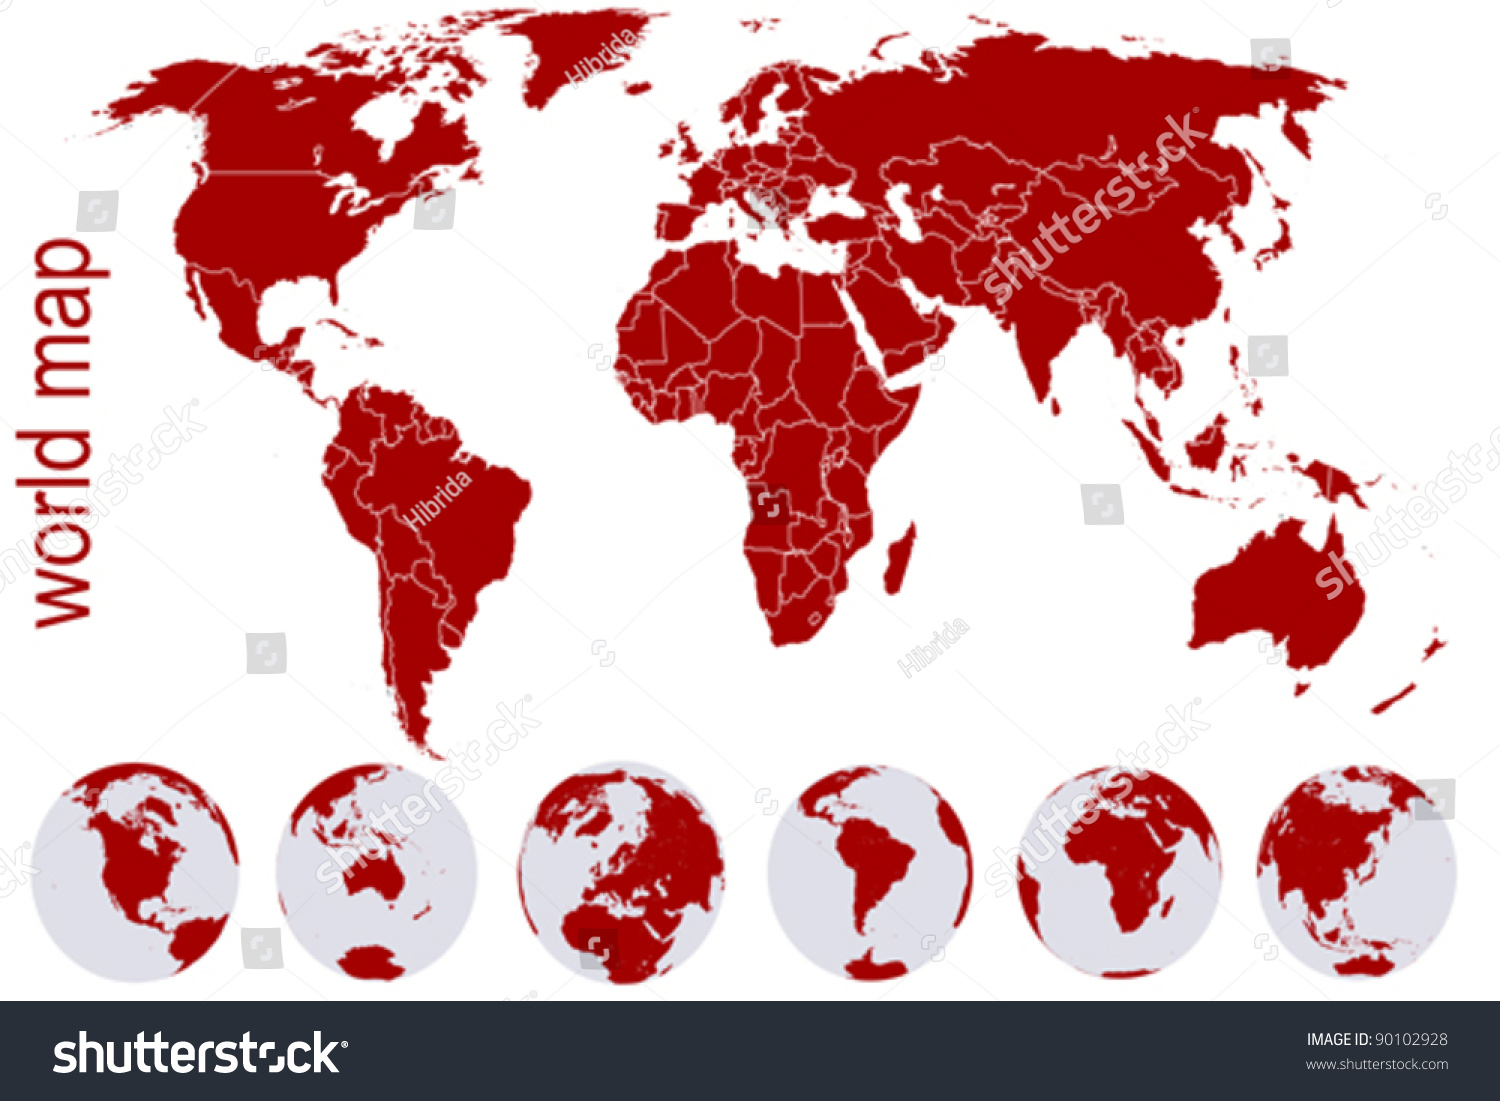 Red world map earth globes vectores en stock 90102928 shutterstock red world map with earth globes gumiabroncs Images